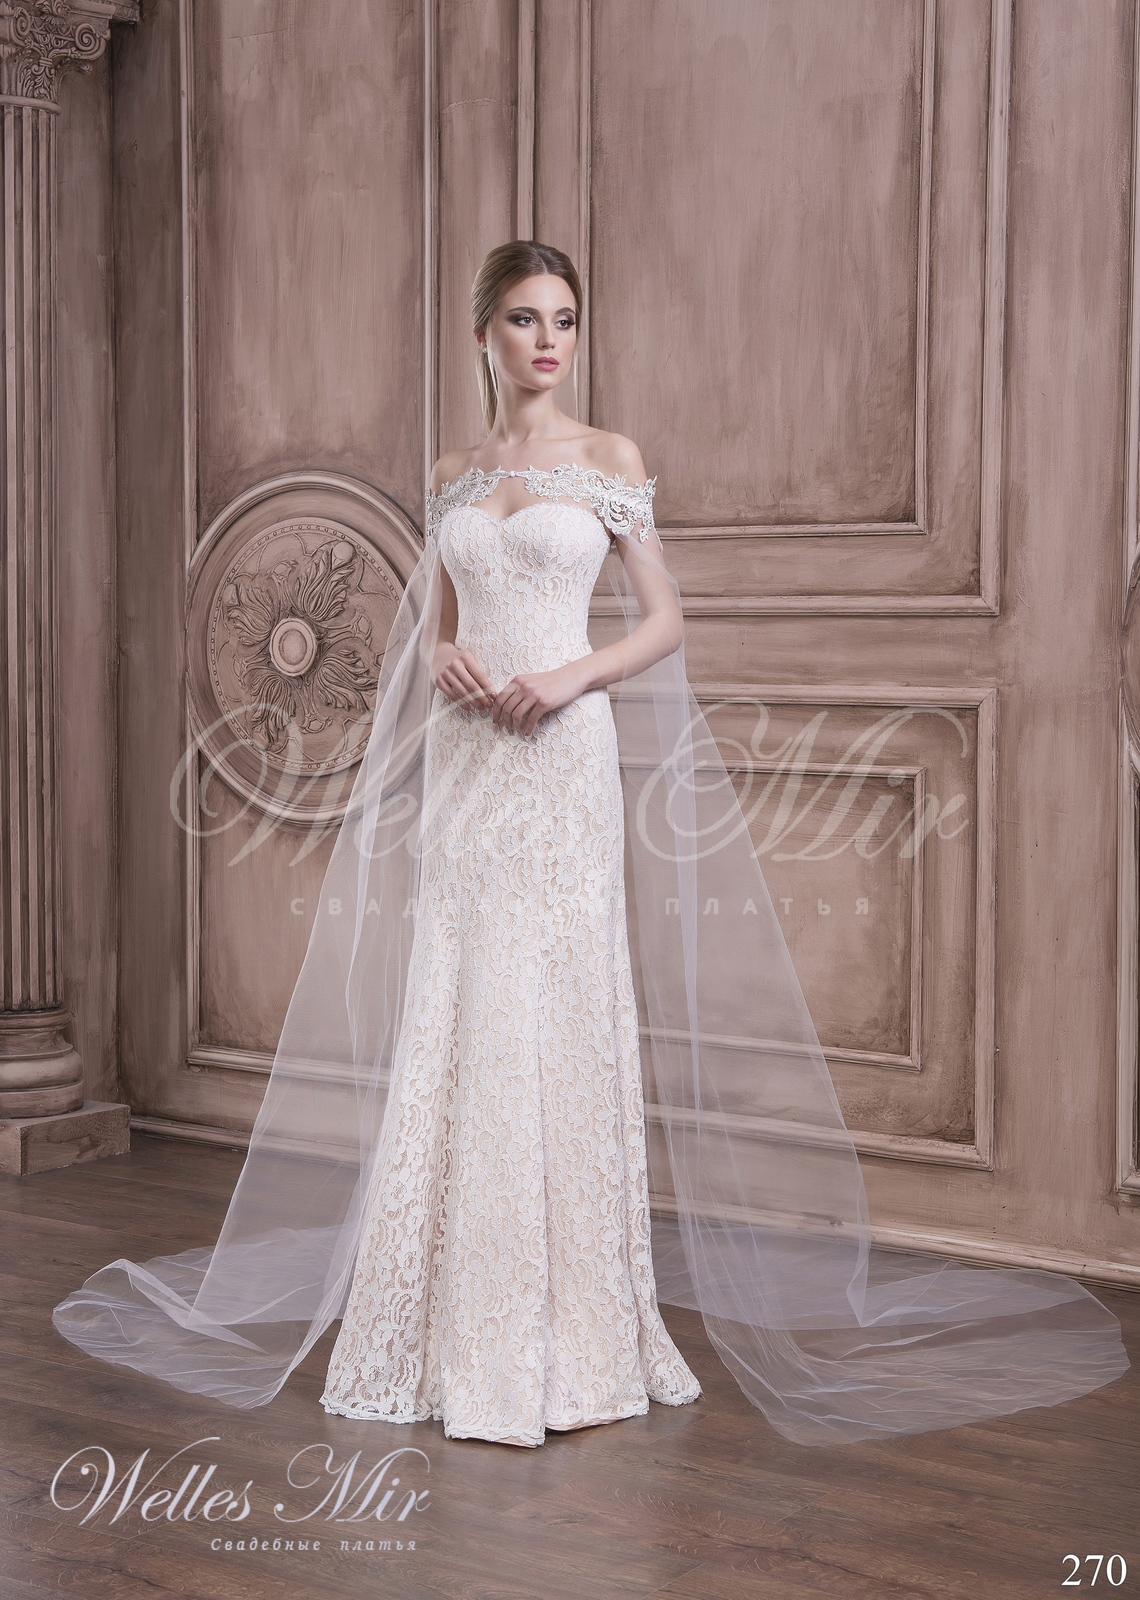 Cape wedding dress 270